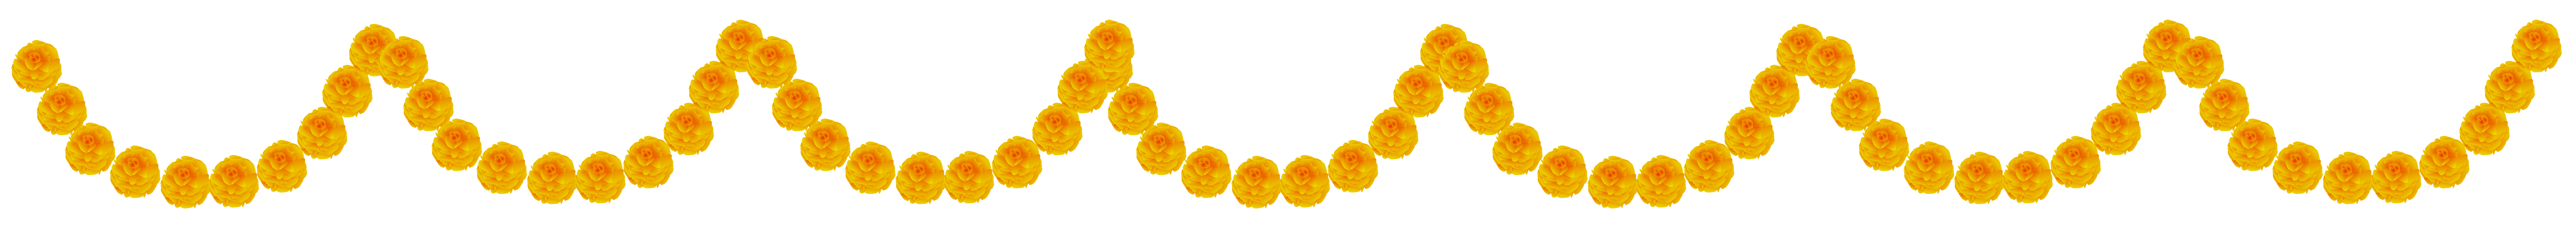 Yellow Flower clipart garland Transparent Clip View  full